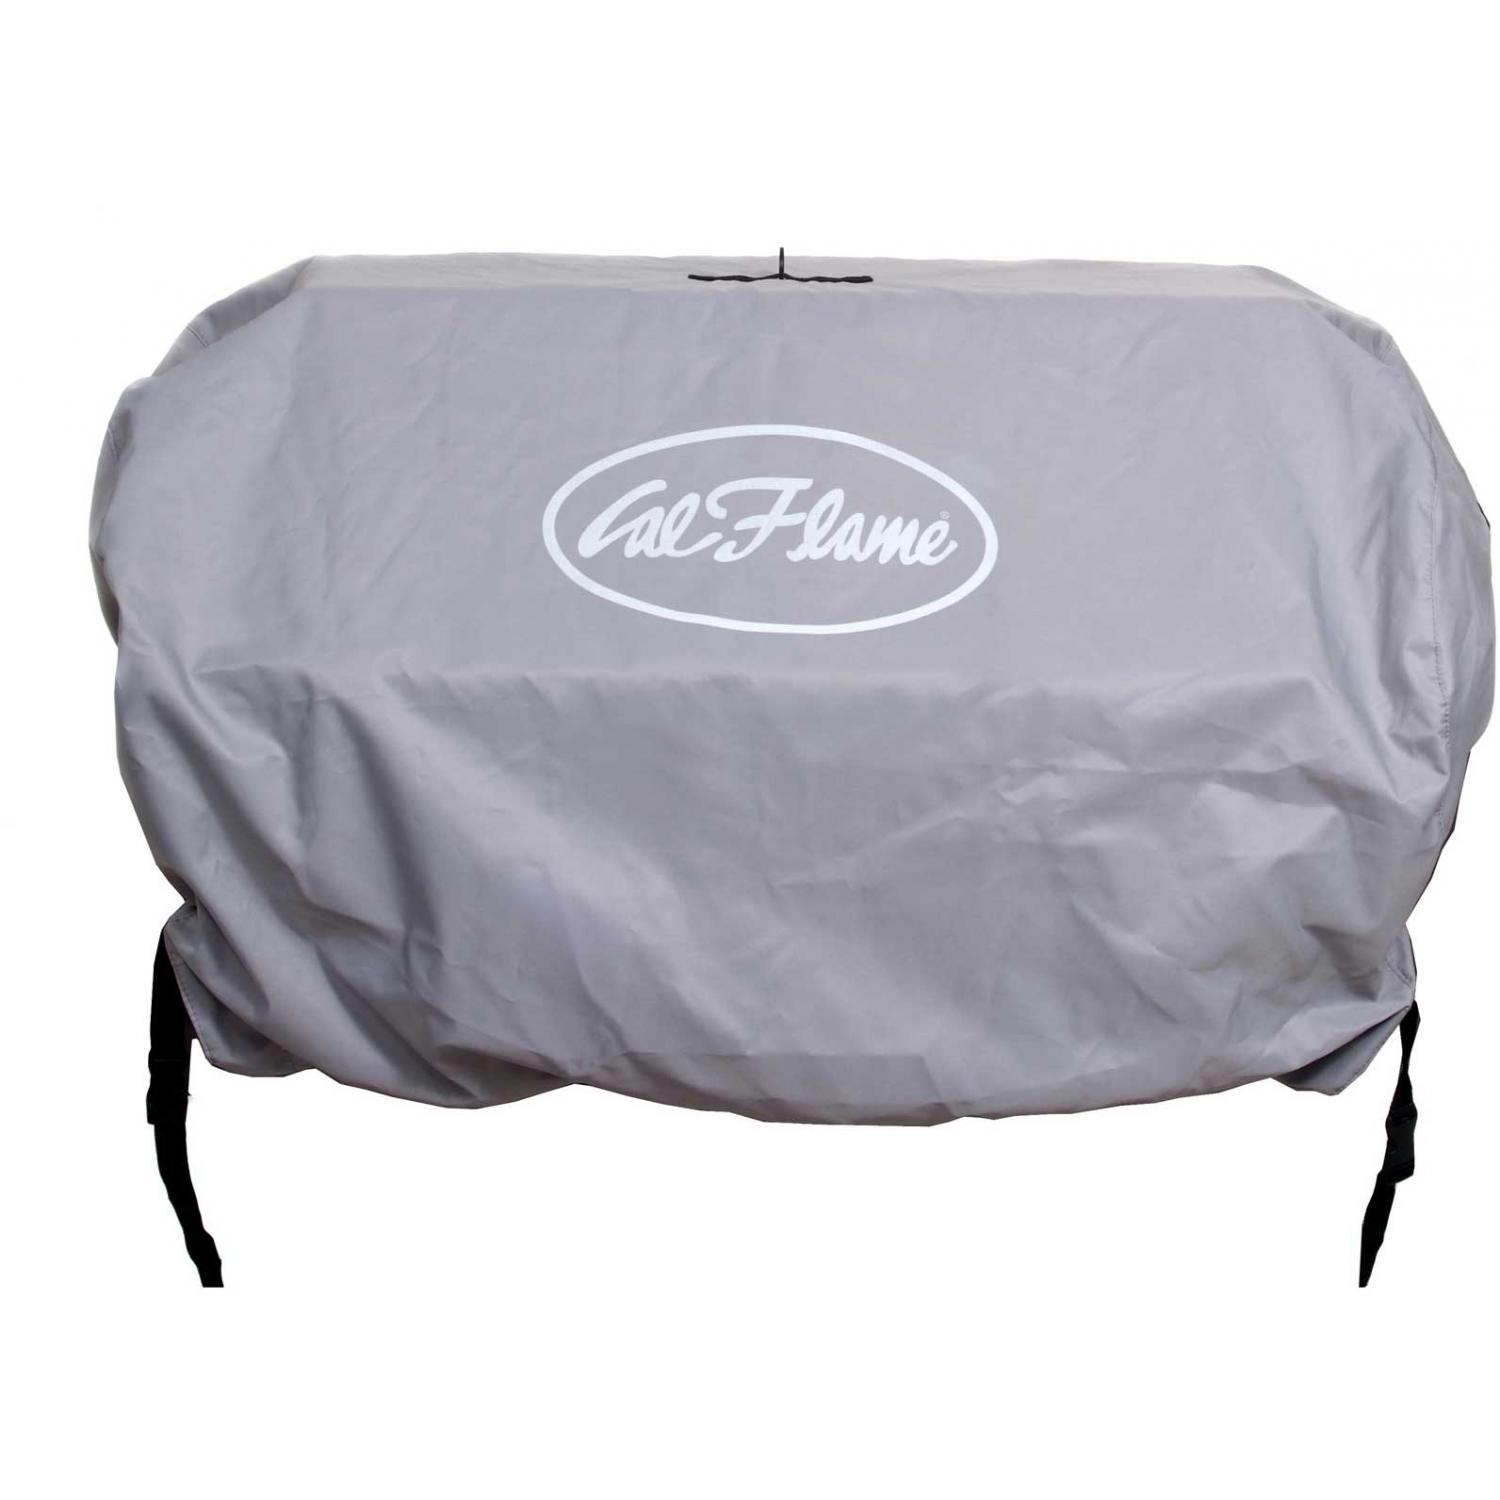 Cal Flame BBQ Grill Cover For 2 3 4 And 5 Burner Grills